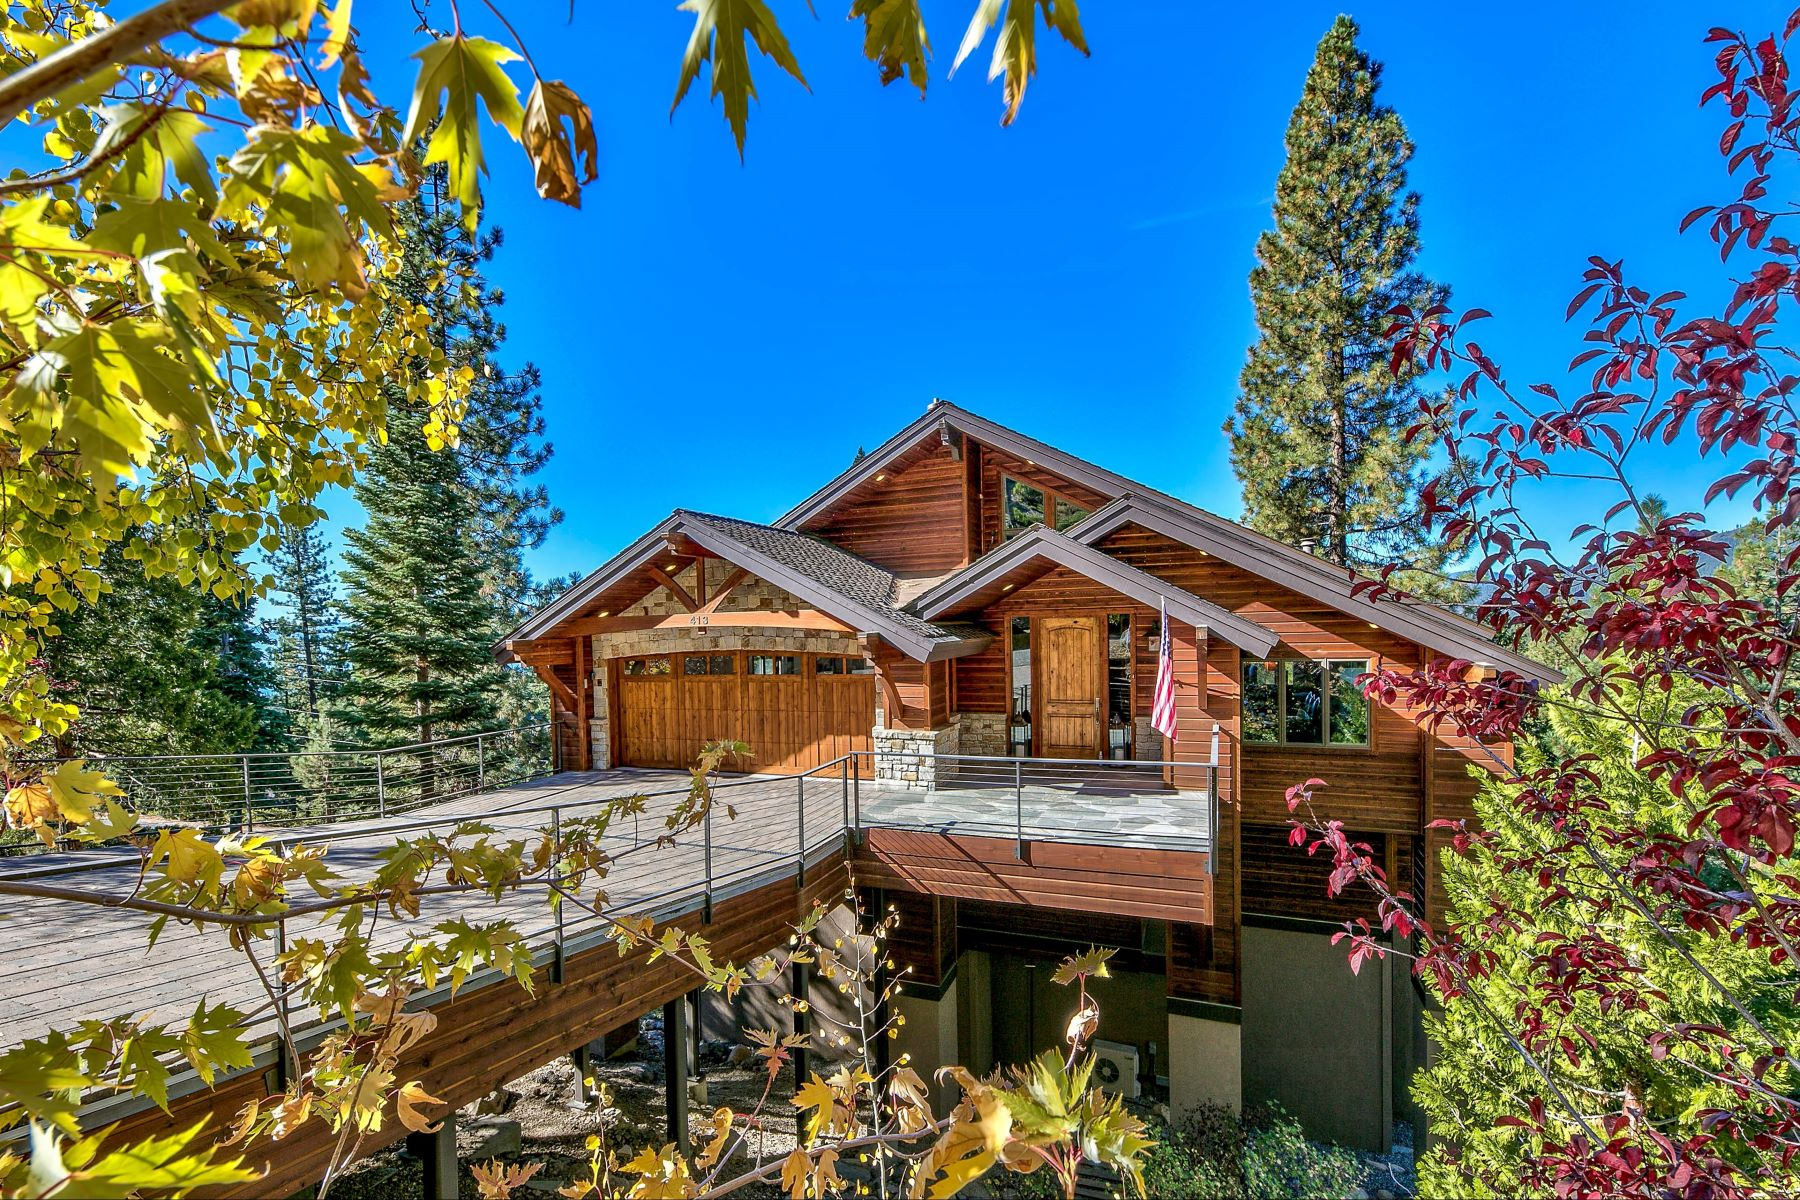 Property for Active at Eastern Slope Gem 413 Fairview Blvd Incline Village, Nevada 89451 United States